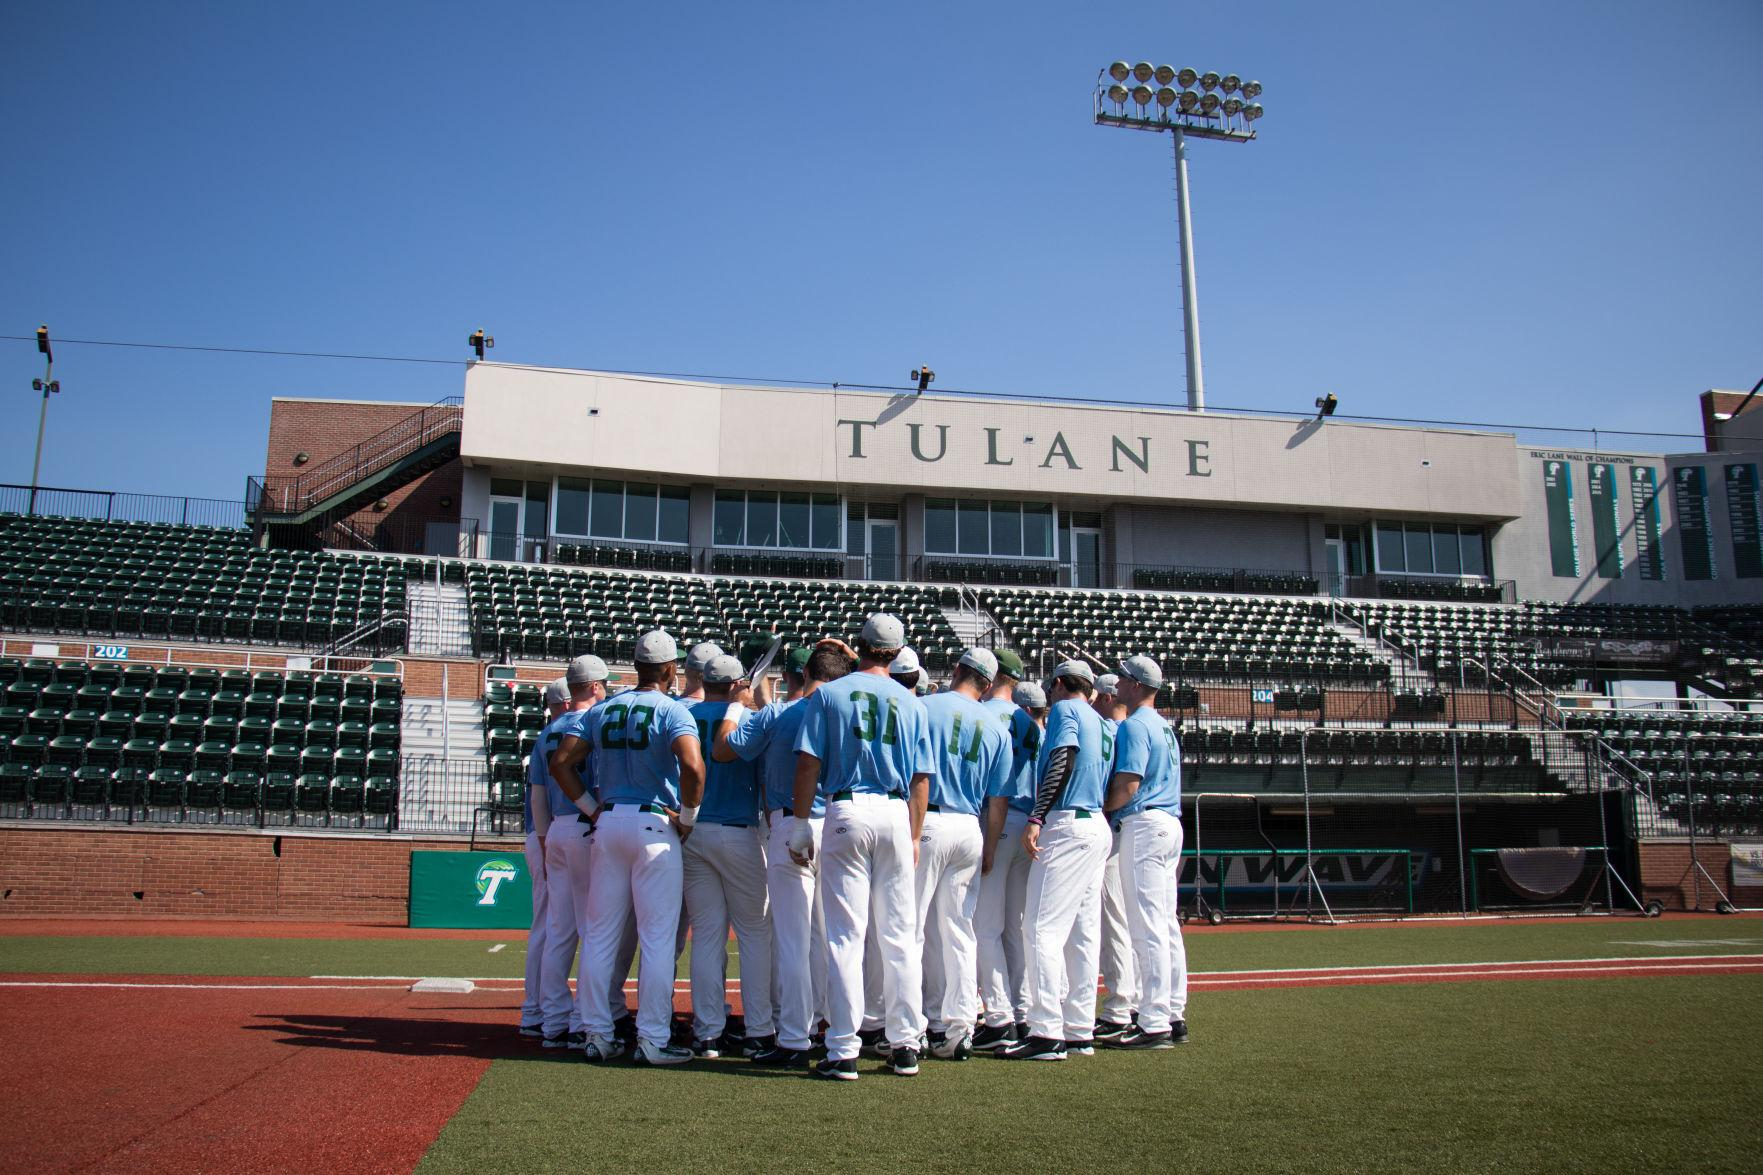 The team huddles during a fall ball practice in Turhcin Stadium. Baseball ended it's fall ball practices with alumni weekend. The team's spring season will begin on February 17 with a home game against Army.